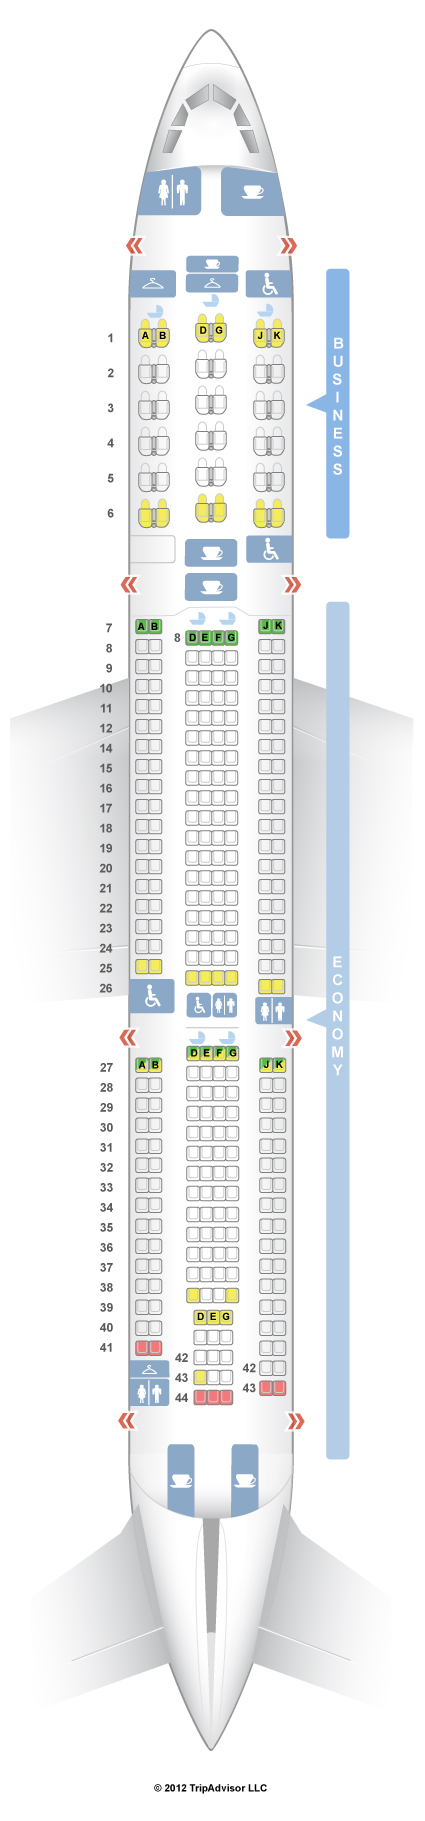 SeatGuru Seat Map China Airlines Airbus A330-300 (333) V1 - photo#40